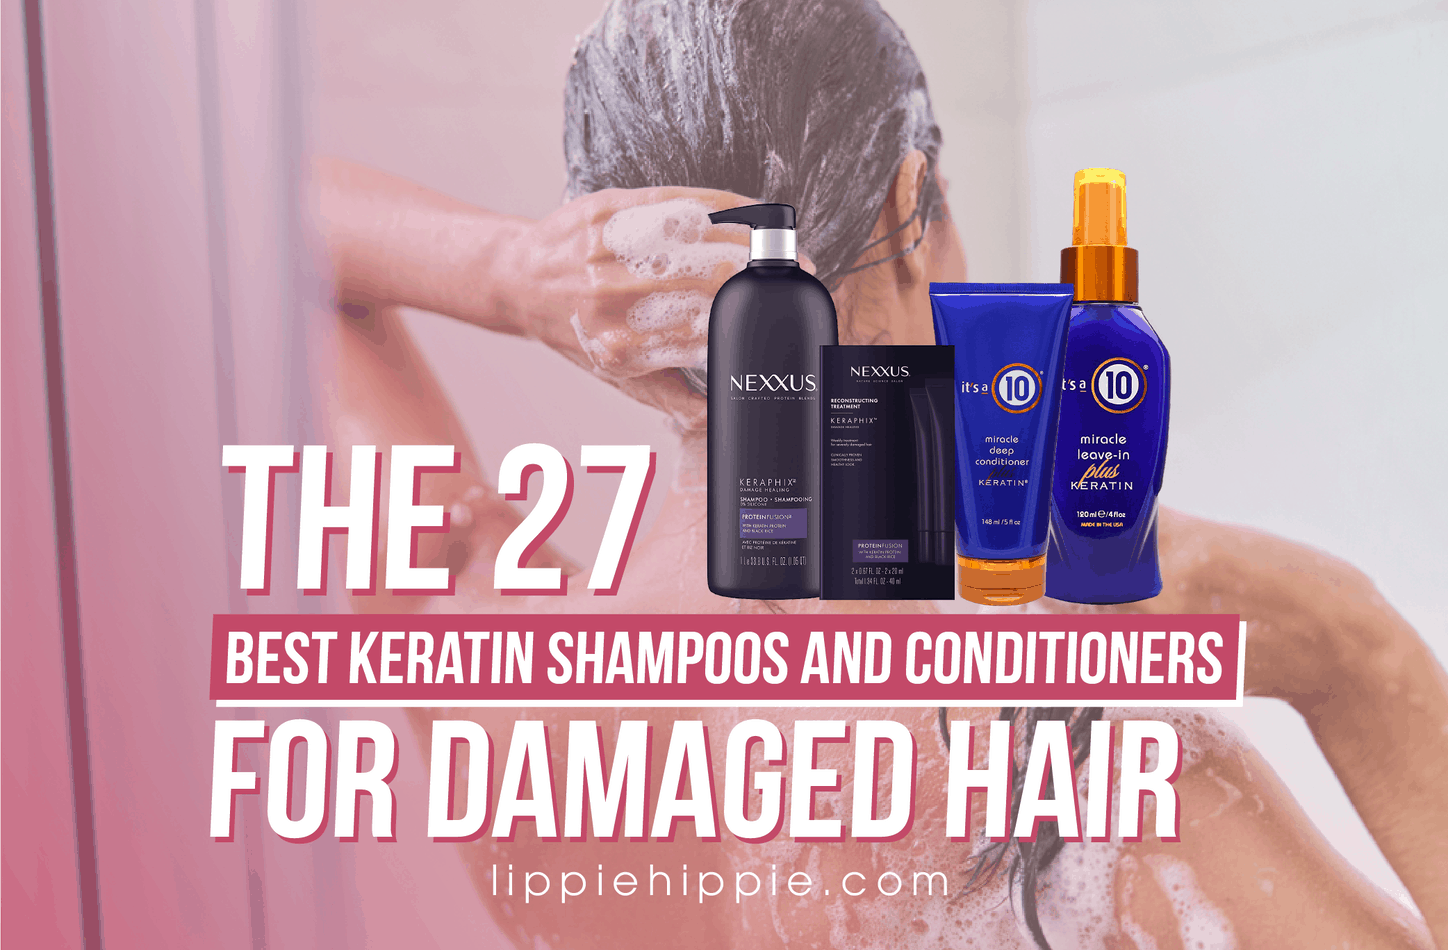 Best Keratin Shampoos and Conditioners for Damaged Hair